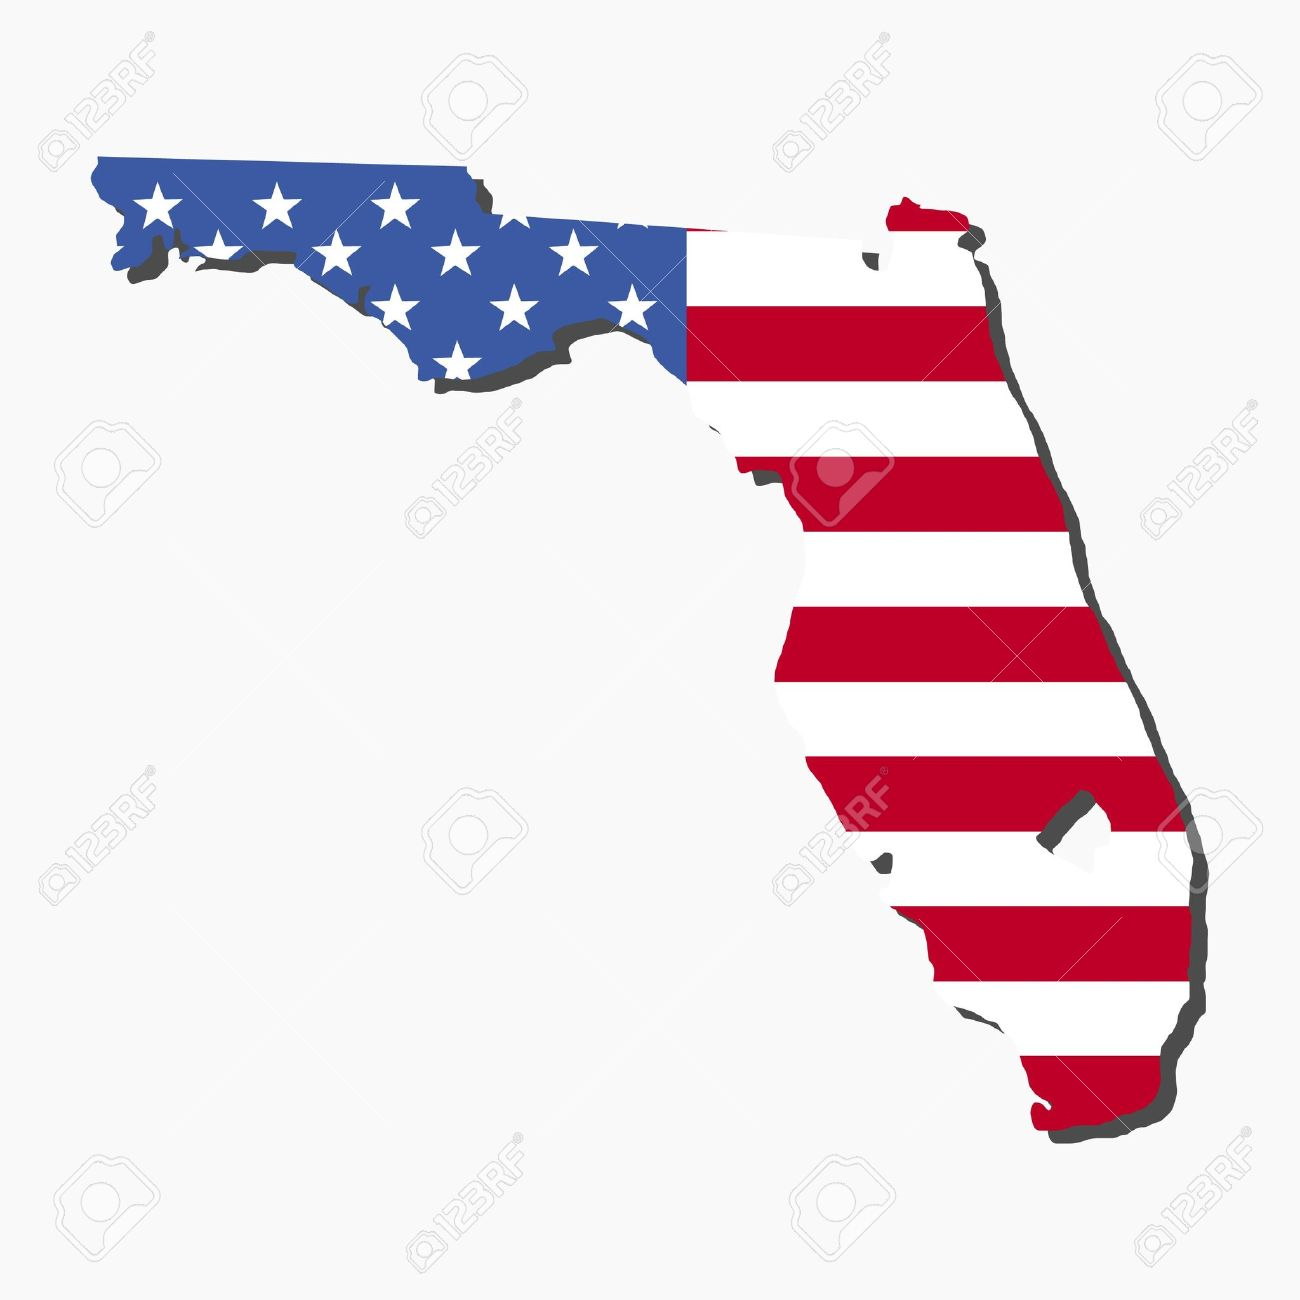 map of the state of florida and american flag illustration stock